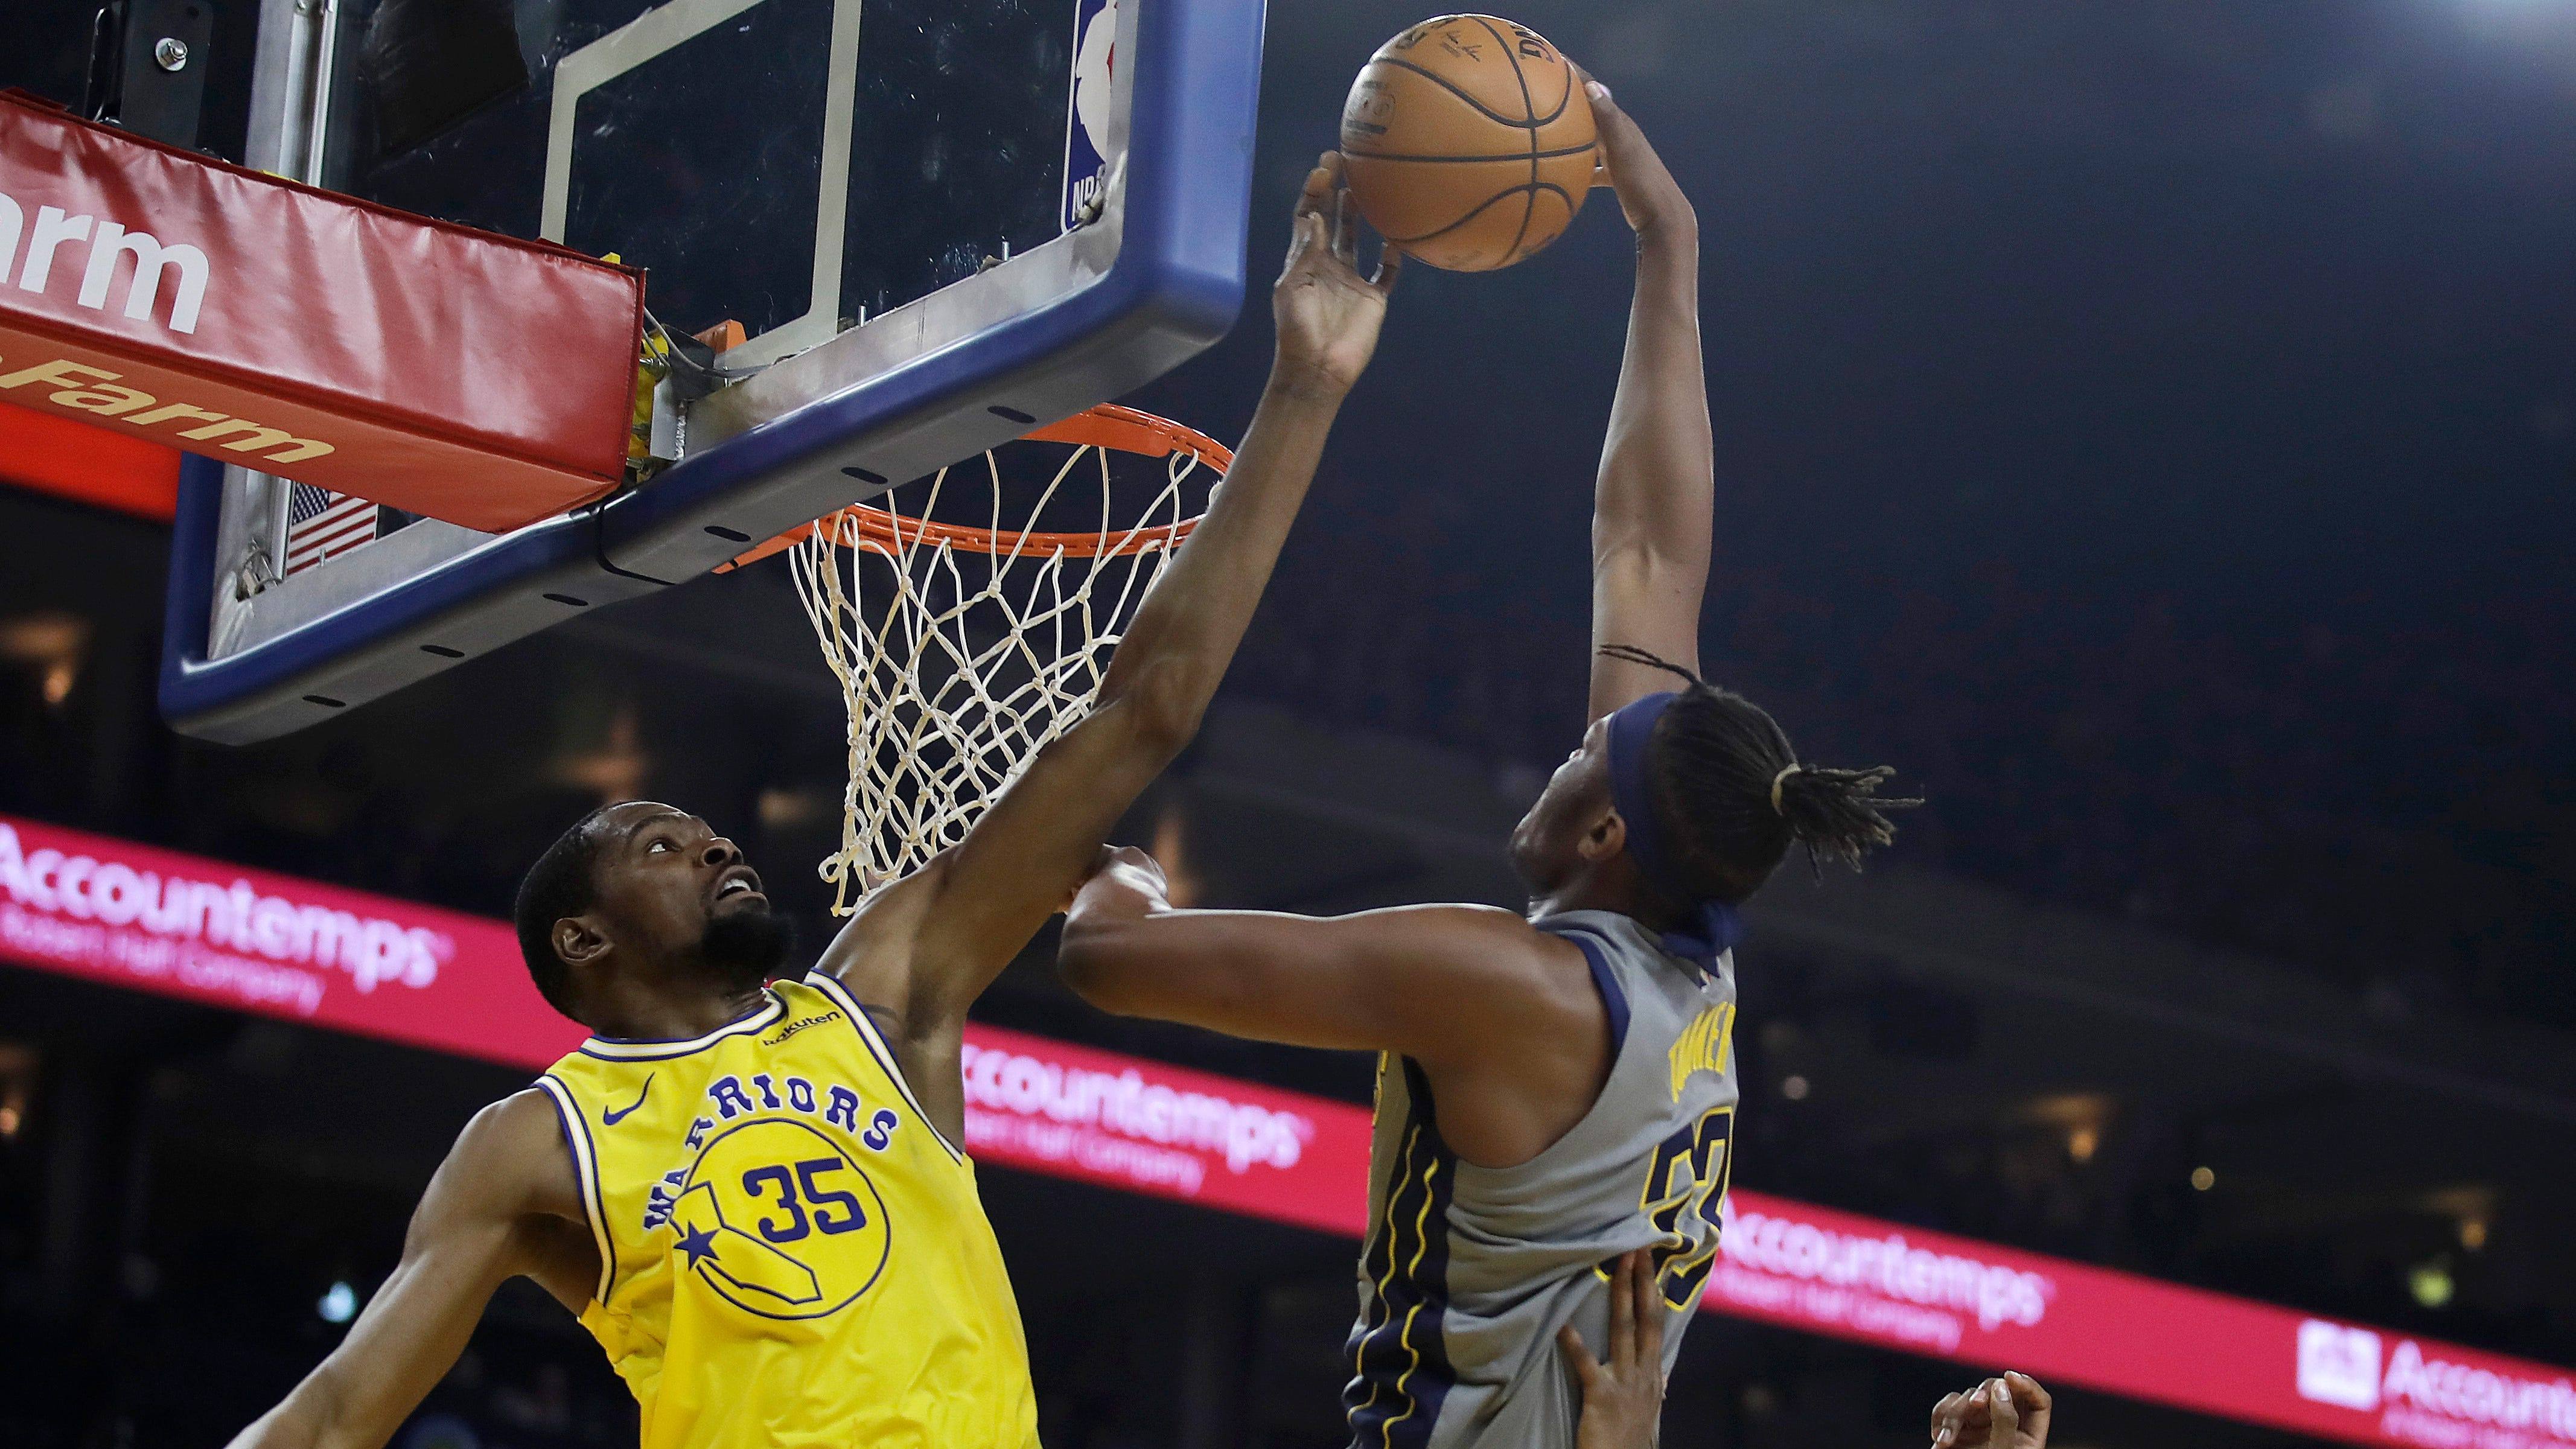 Golden State Warriors' Kevin Durant, left, blocks a shot from Indiana Pacers' Myles Turner (33) during the first half of an NBA basketball game Thursday, March 21, 2019, in Oakland, Calif.